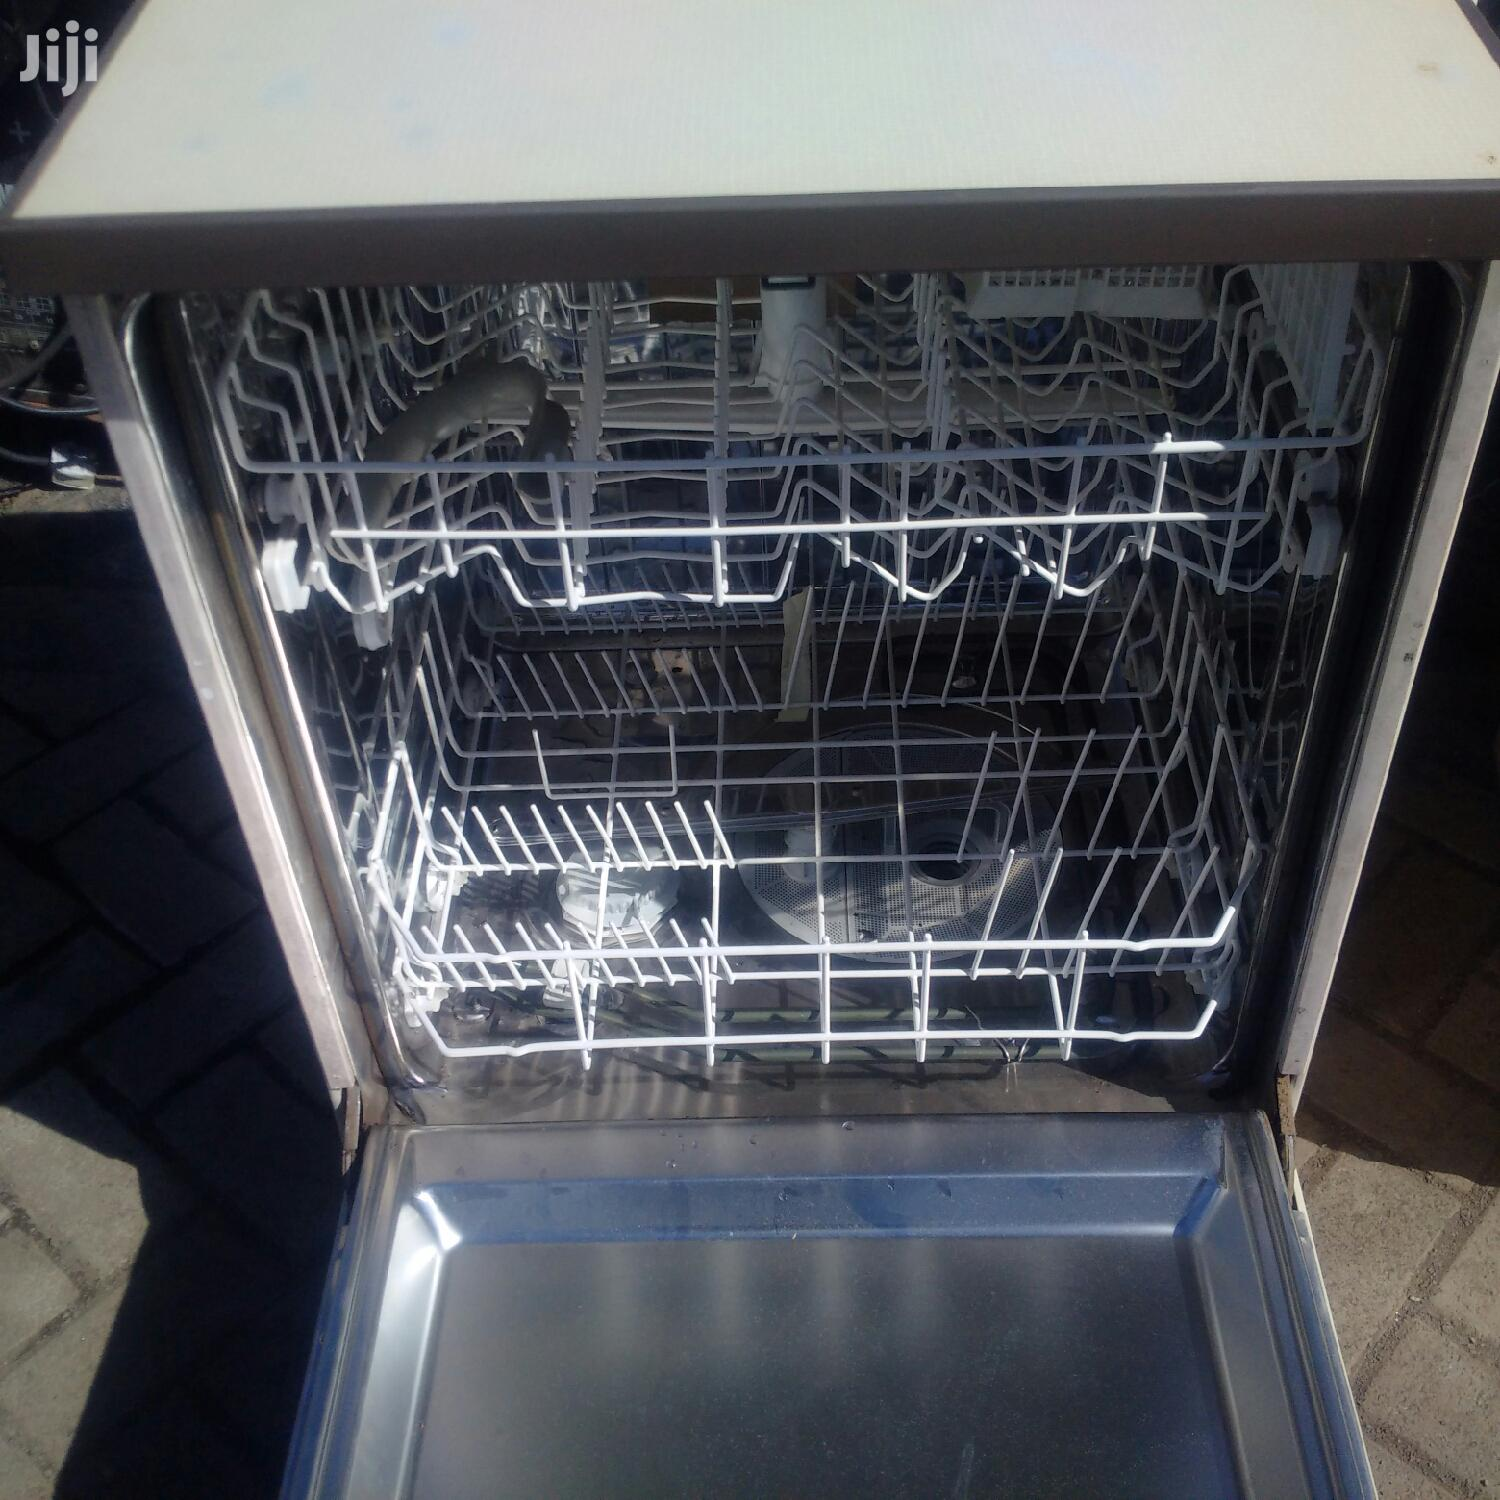 Hotpoint Super Plus 7821 Dishwasher | Kitchen Appliances for sale in Nairobi Central, Nairobi, Kenya